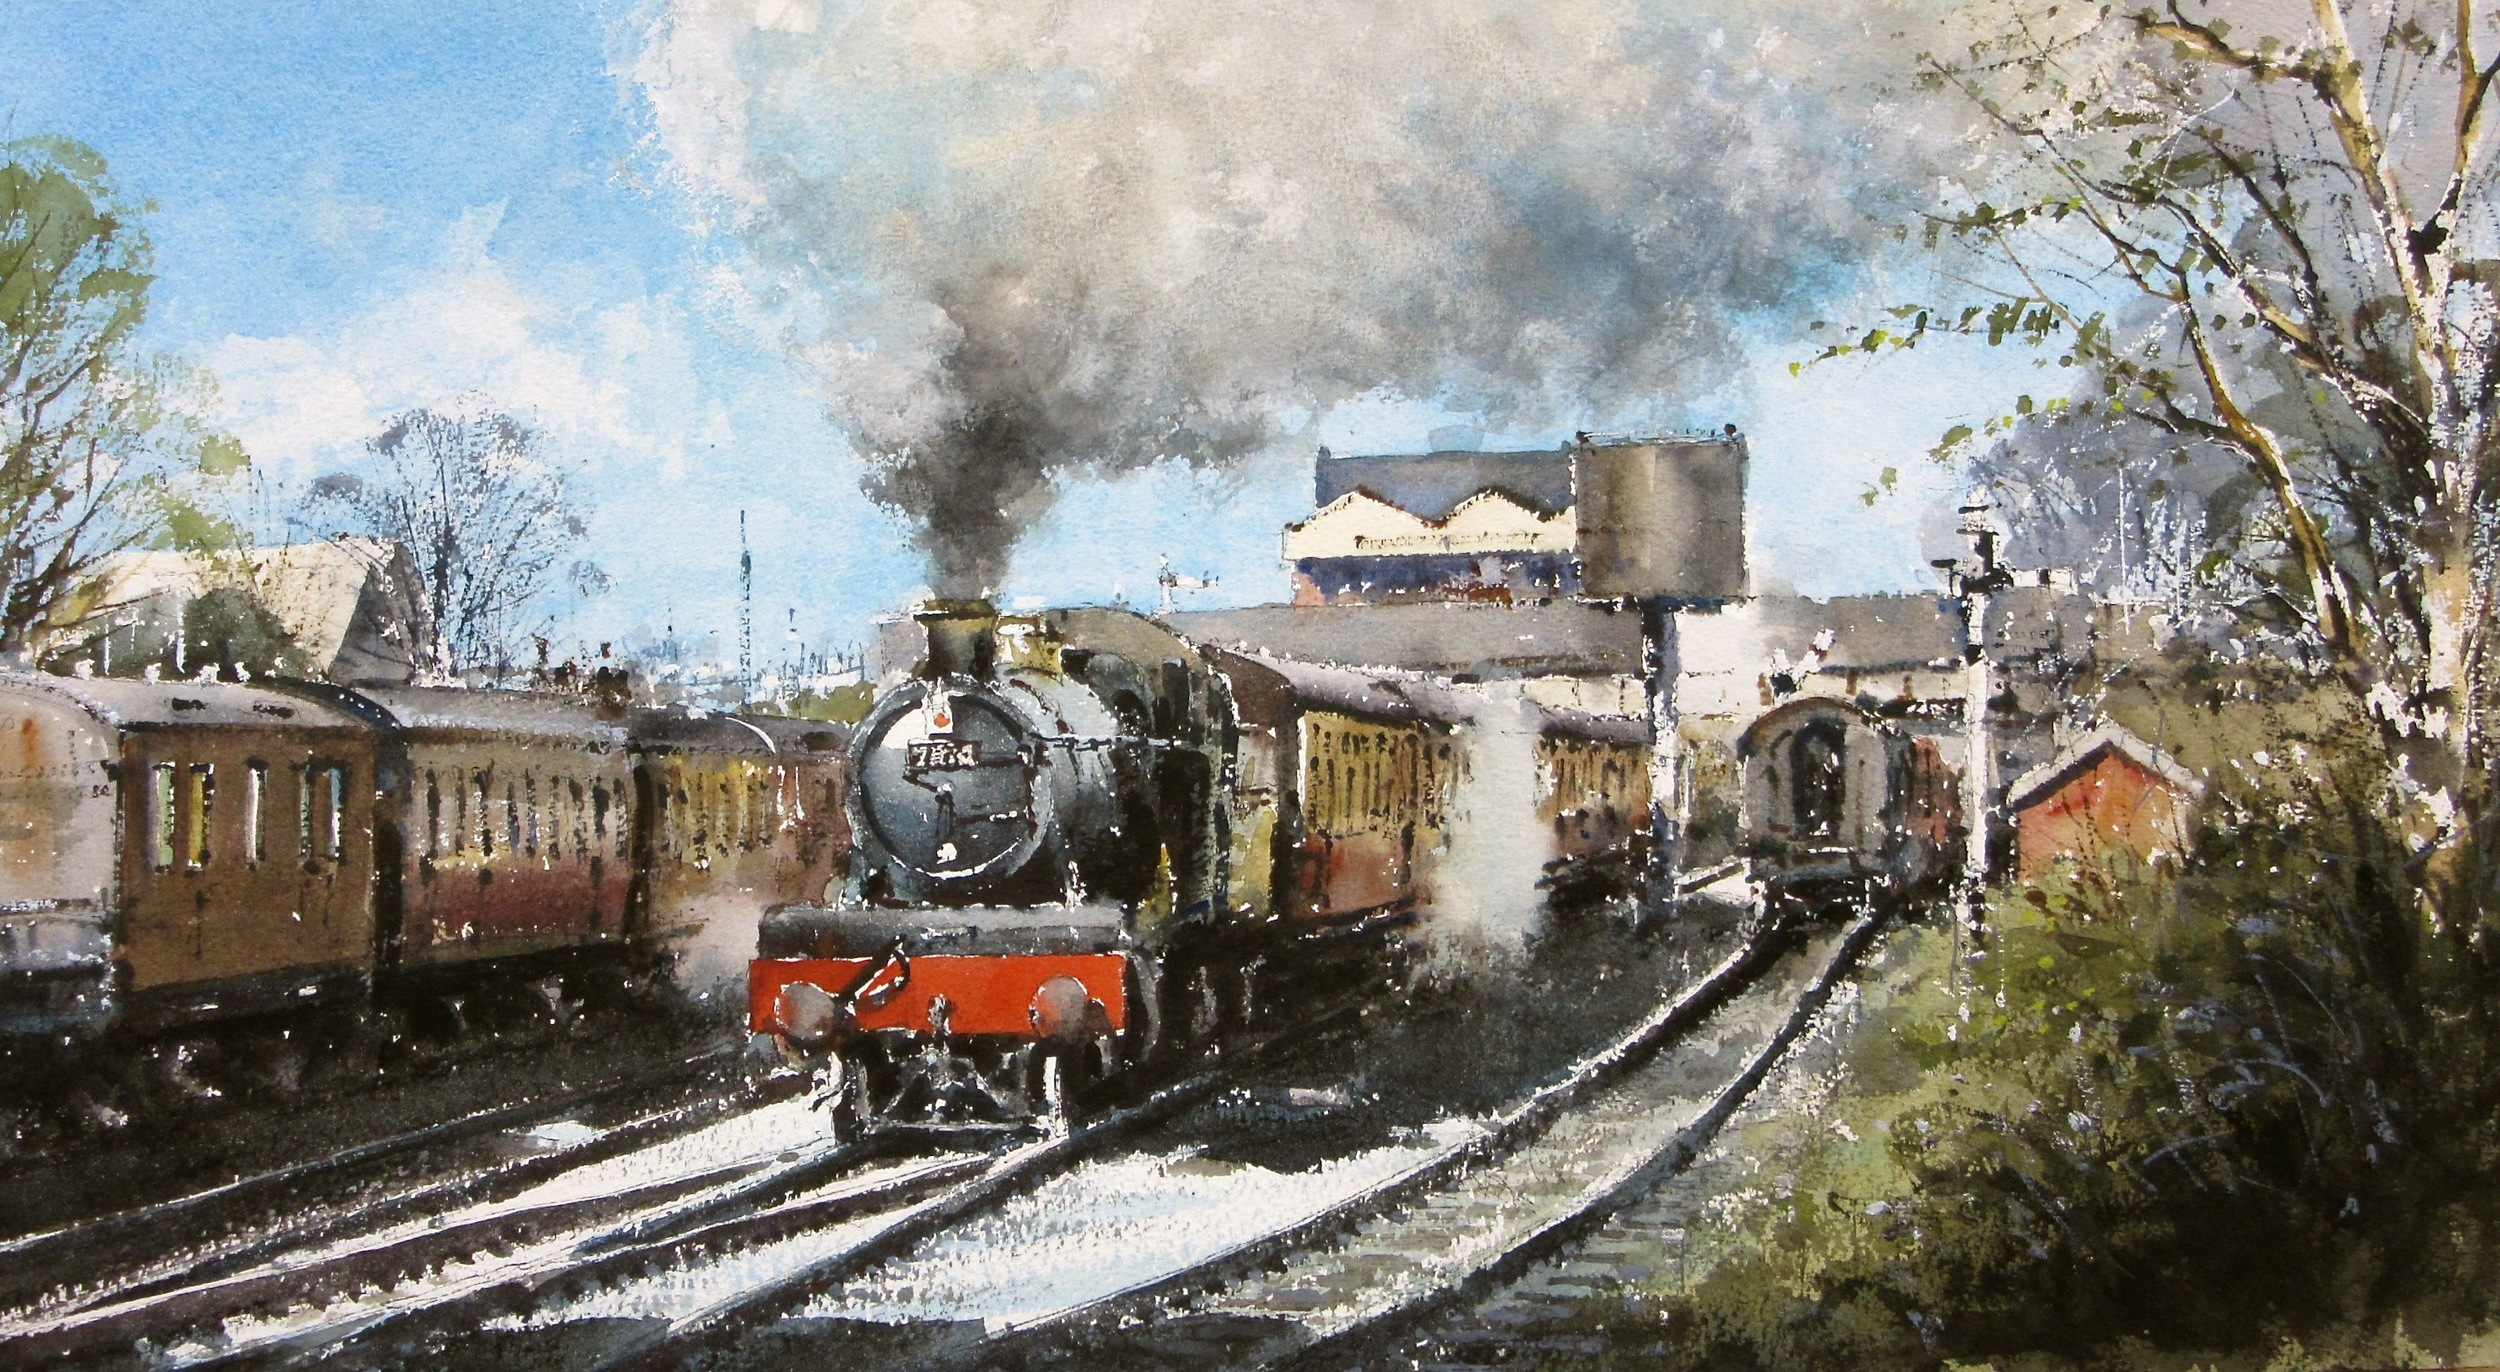 GWR 7800 Class no. 7820 Pulling out of Loughborough: watercolour: 13 x 24 in: SOLD